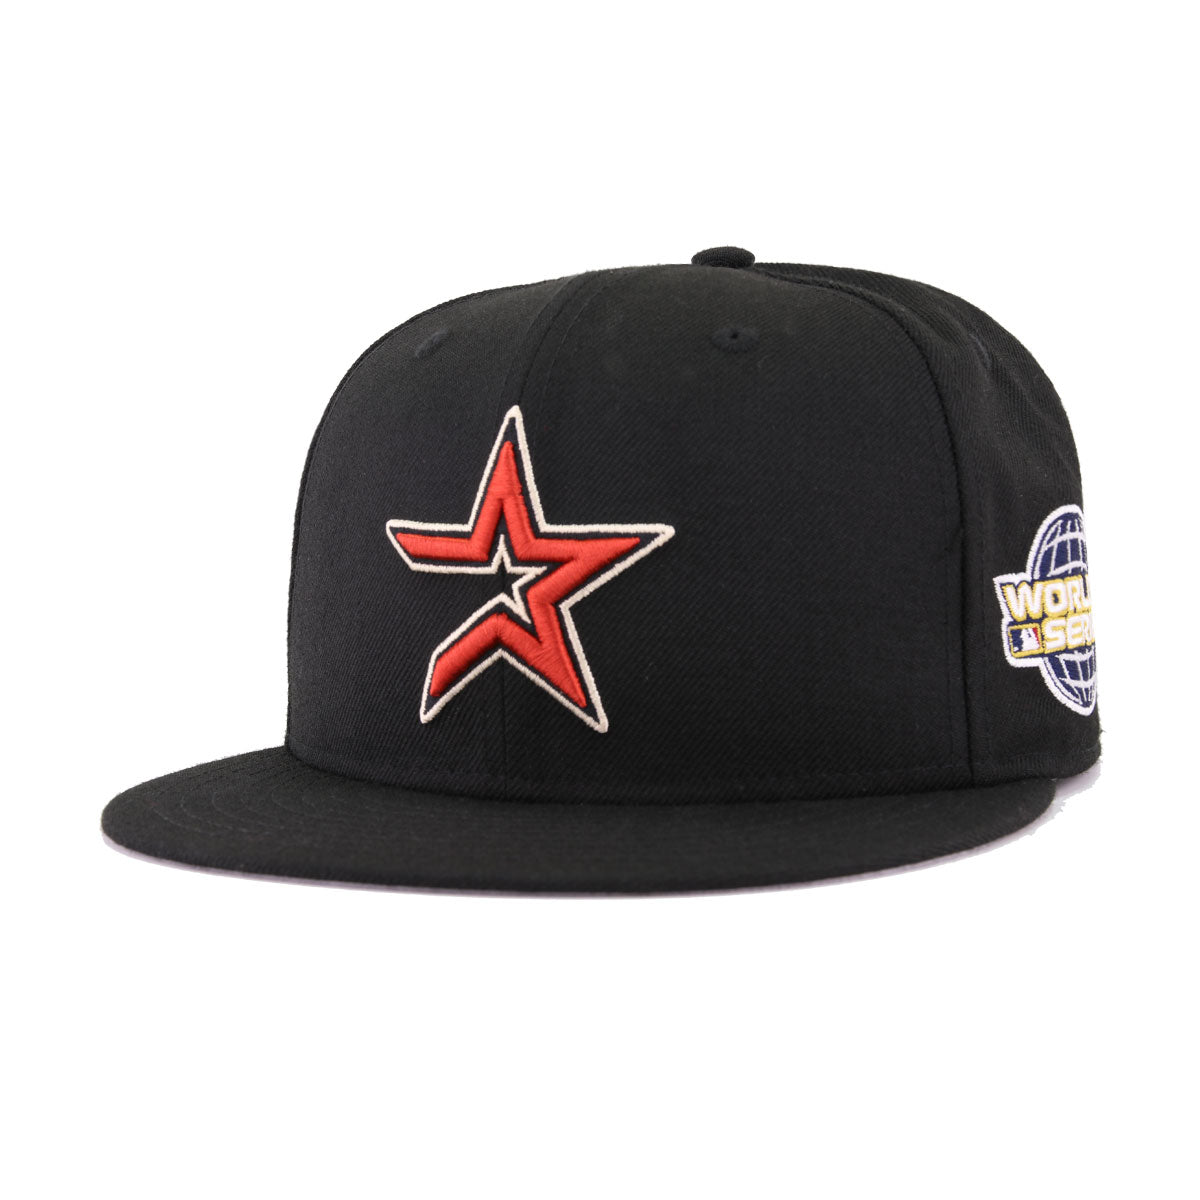 Houston Astros Cooperstown Black Terra Cotta New Era 2005 World Series 59Fifty Fitted